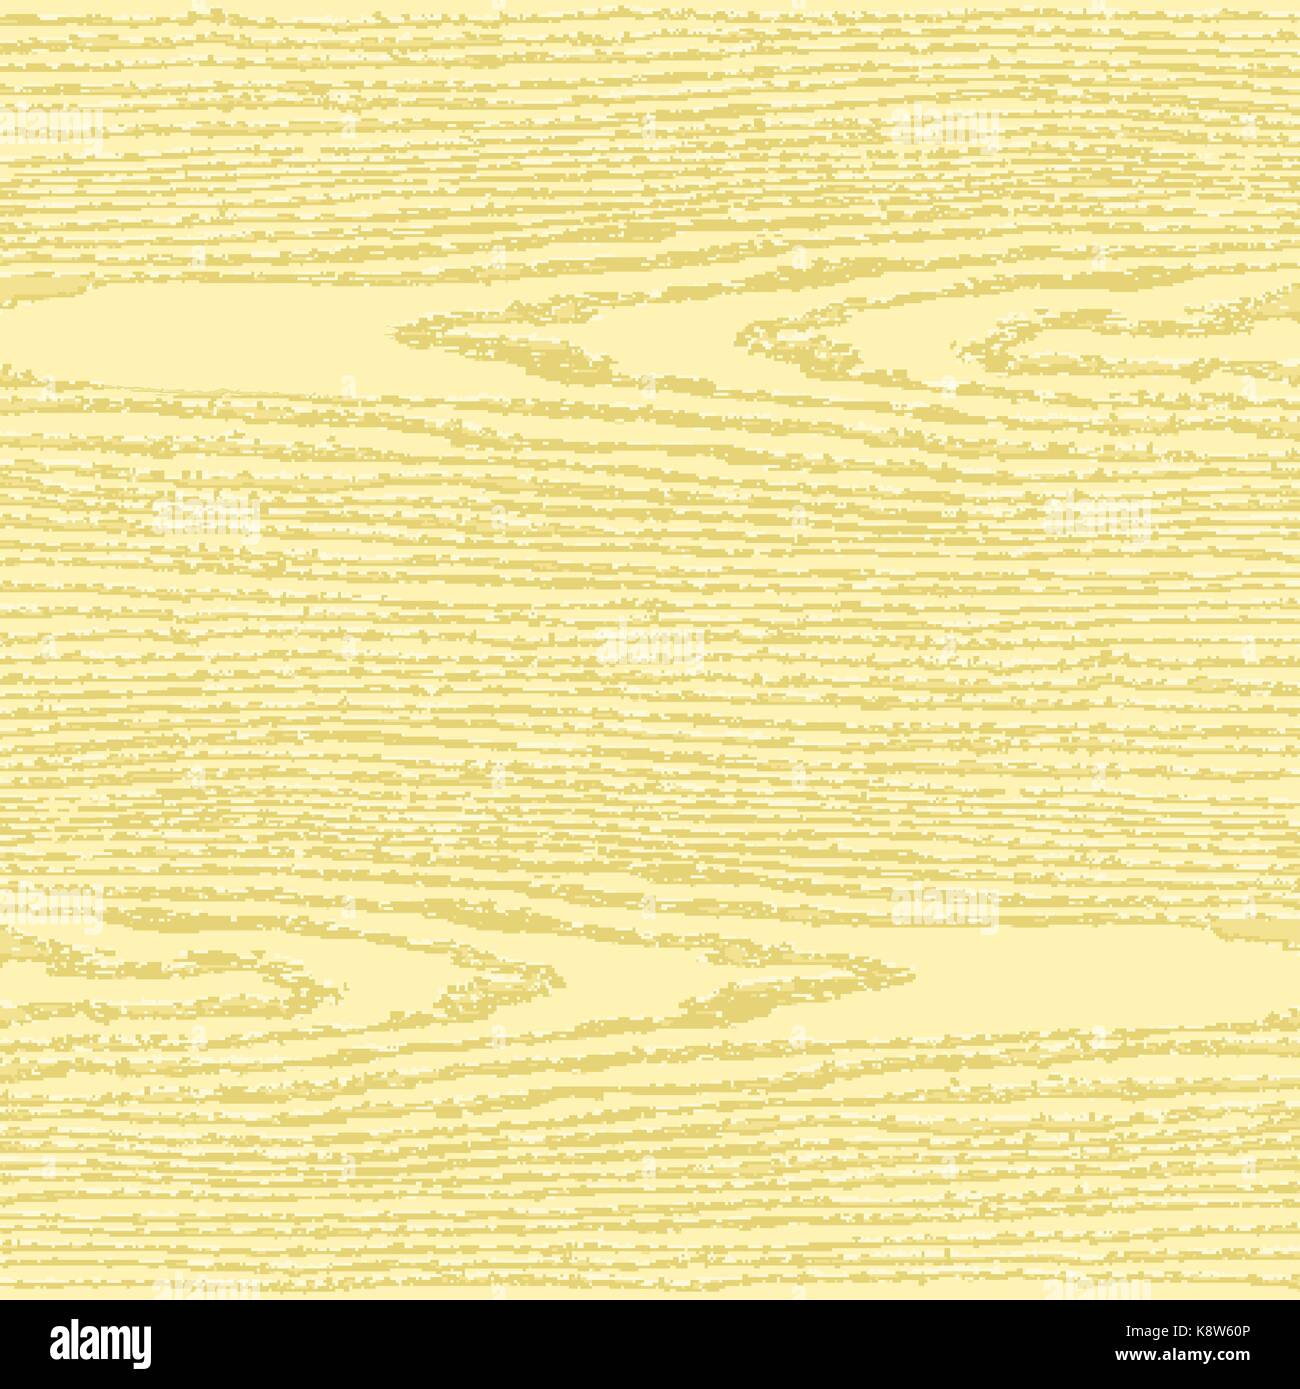 Light yellow wood texture background in square format. Blank natural pattern swatch template. Realistic plank with - Stock Image